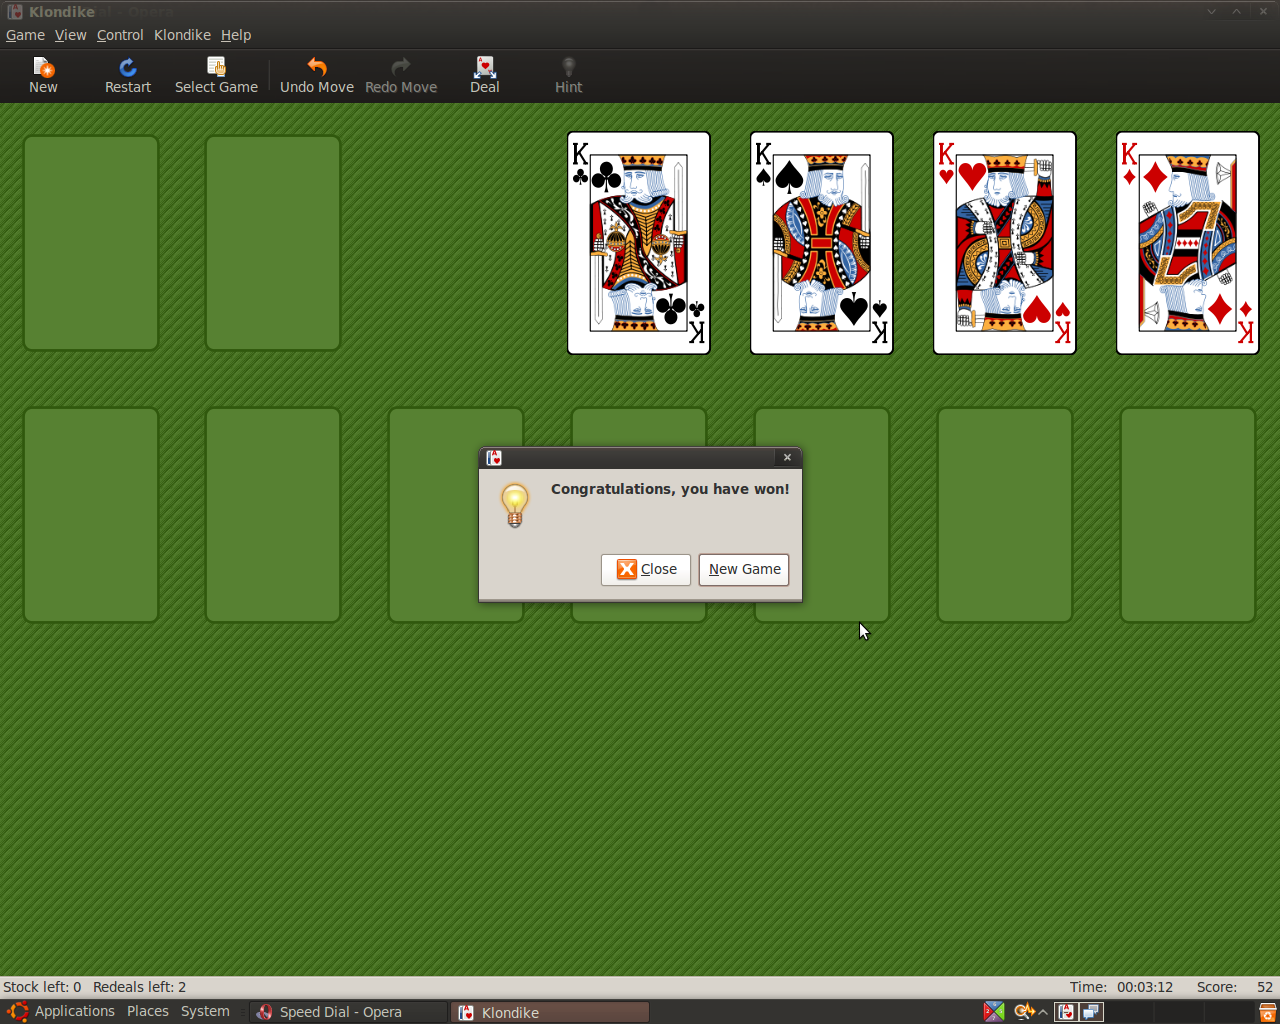 Awesome, I beat Solitaire in one deal!